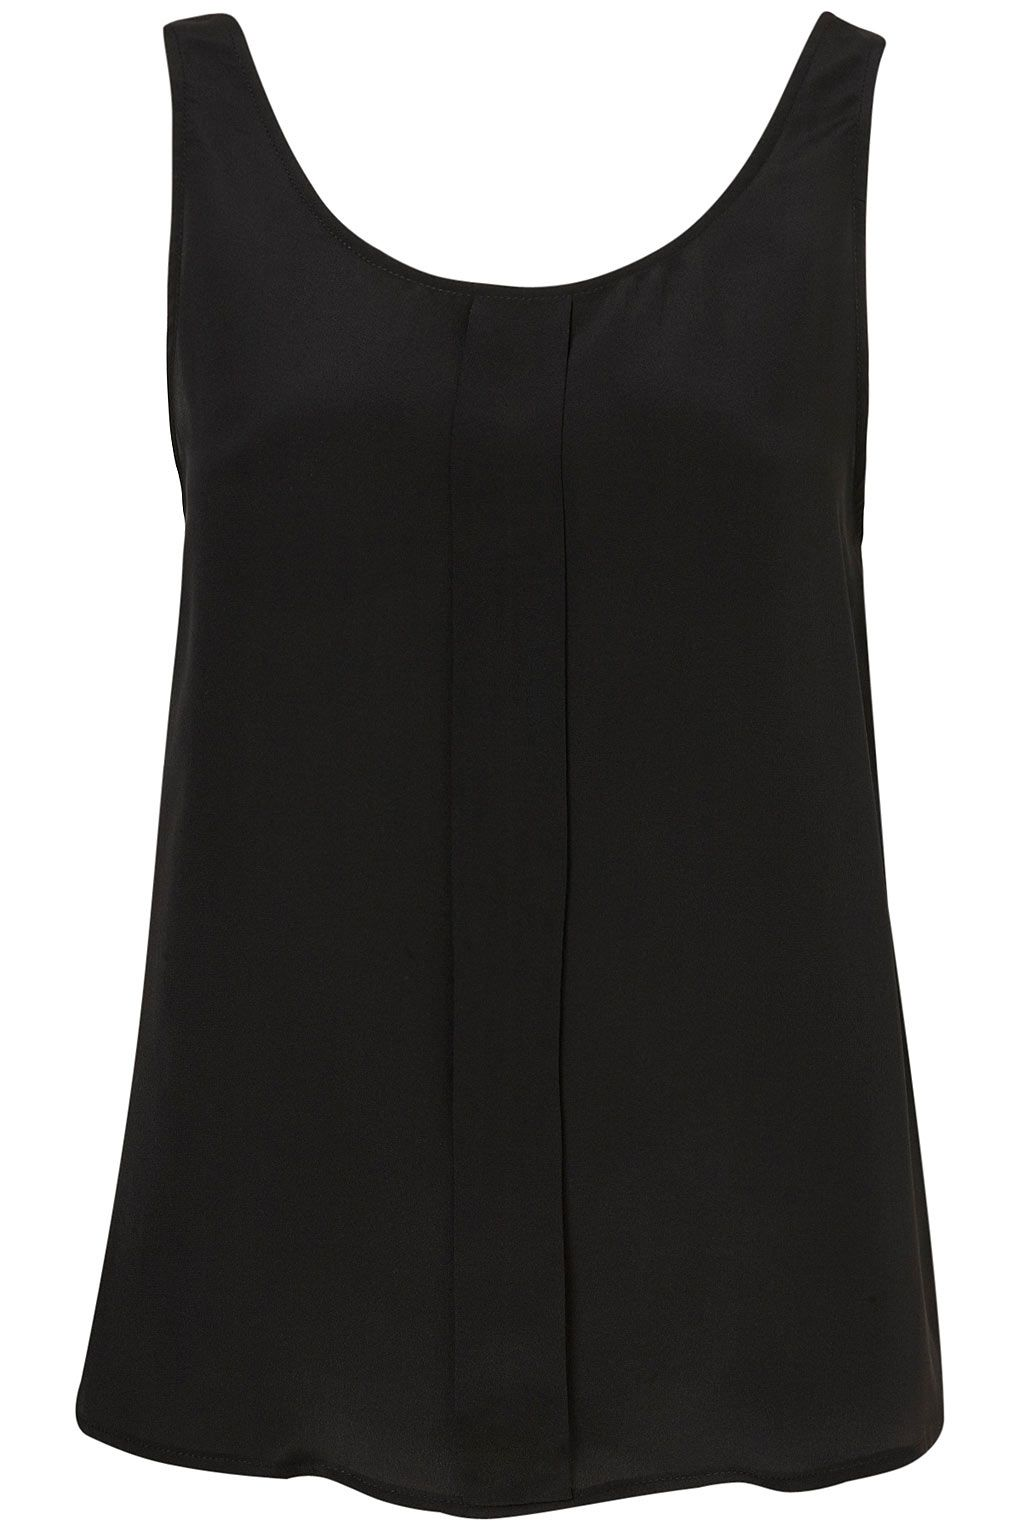 black sorbetto knock off by topshop